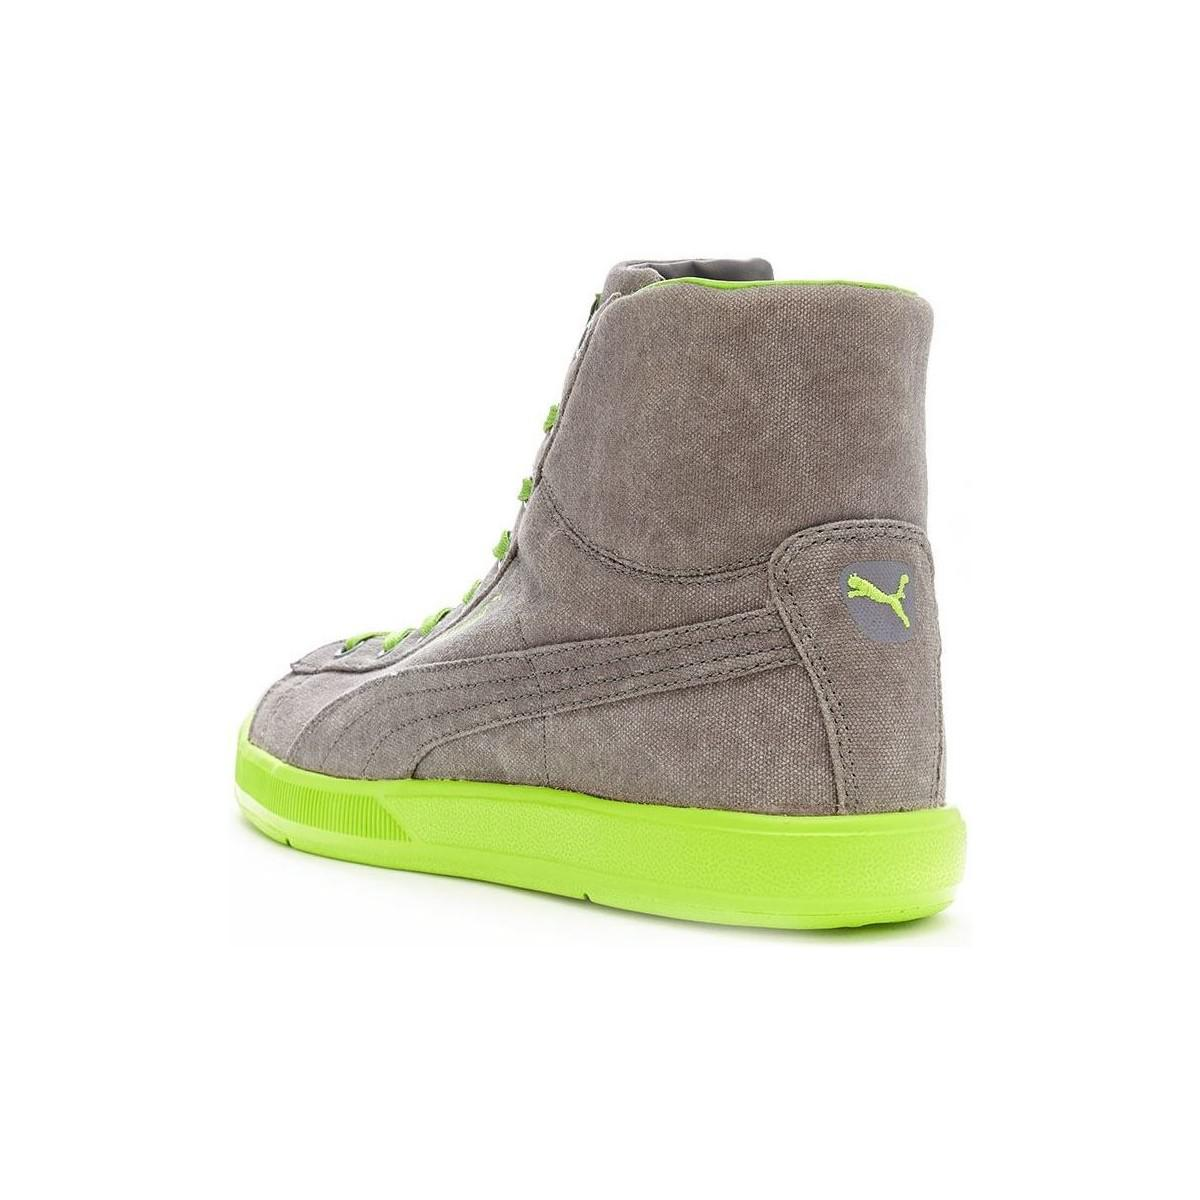 PUMA Archive Lite Mid Washed Trainers In Grey Green 355536 03 Men s ... b0e46c5f252b